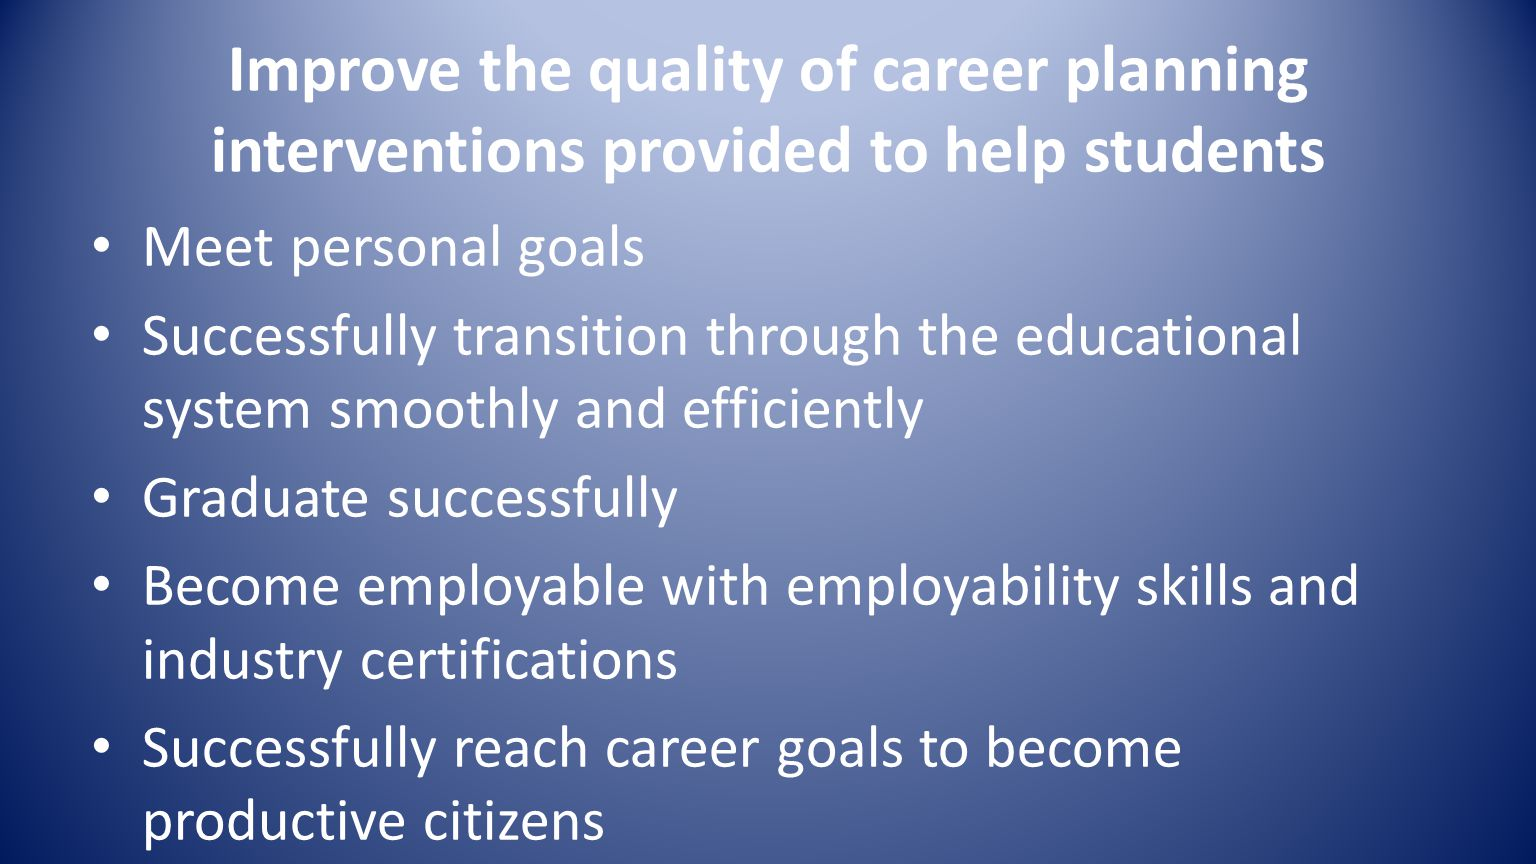 Improve the quality of career planning interventions provided to help students Meet personal goals Successfully transition through the educational system smoothly and efficiently Graduate successfully Become employable with employability skills and industry certifications Successfully reach career goals to become productive citizens